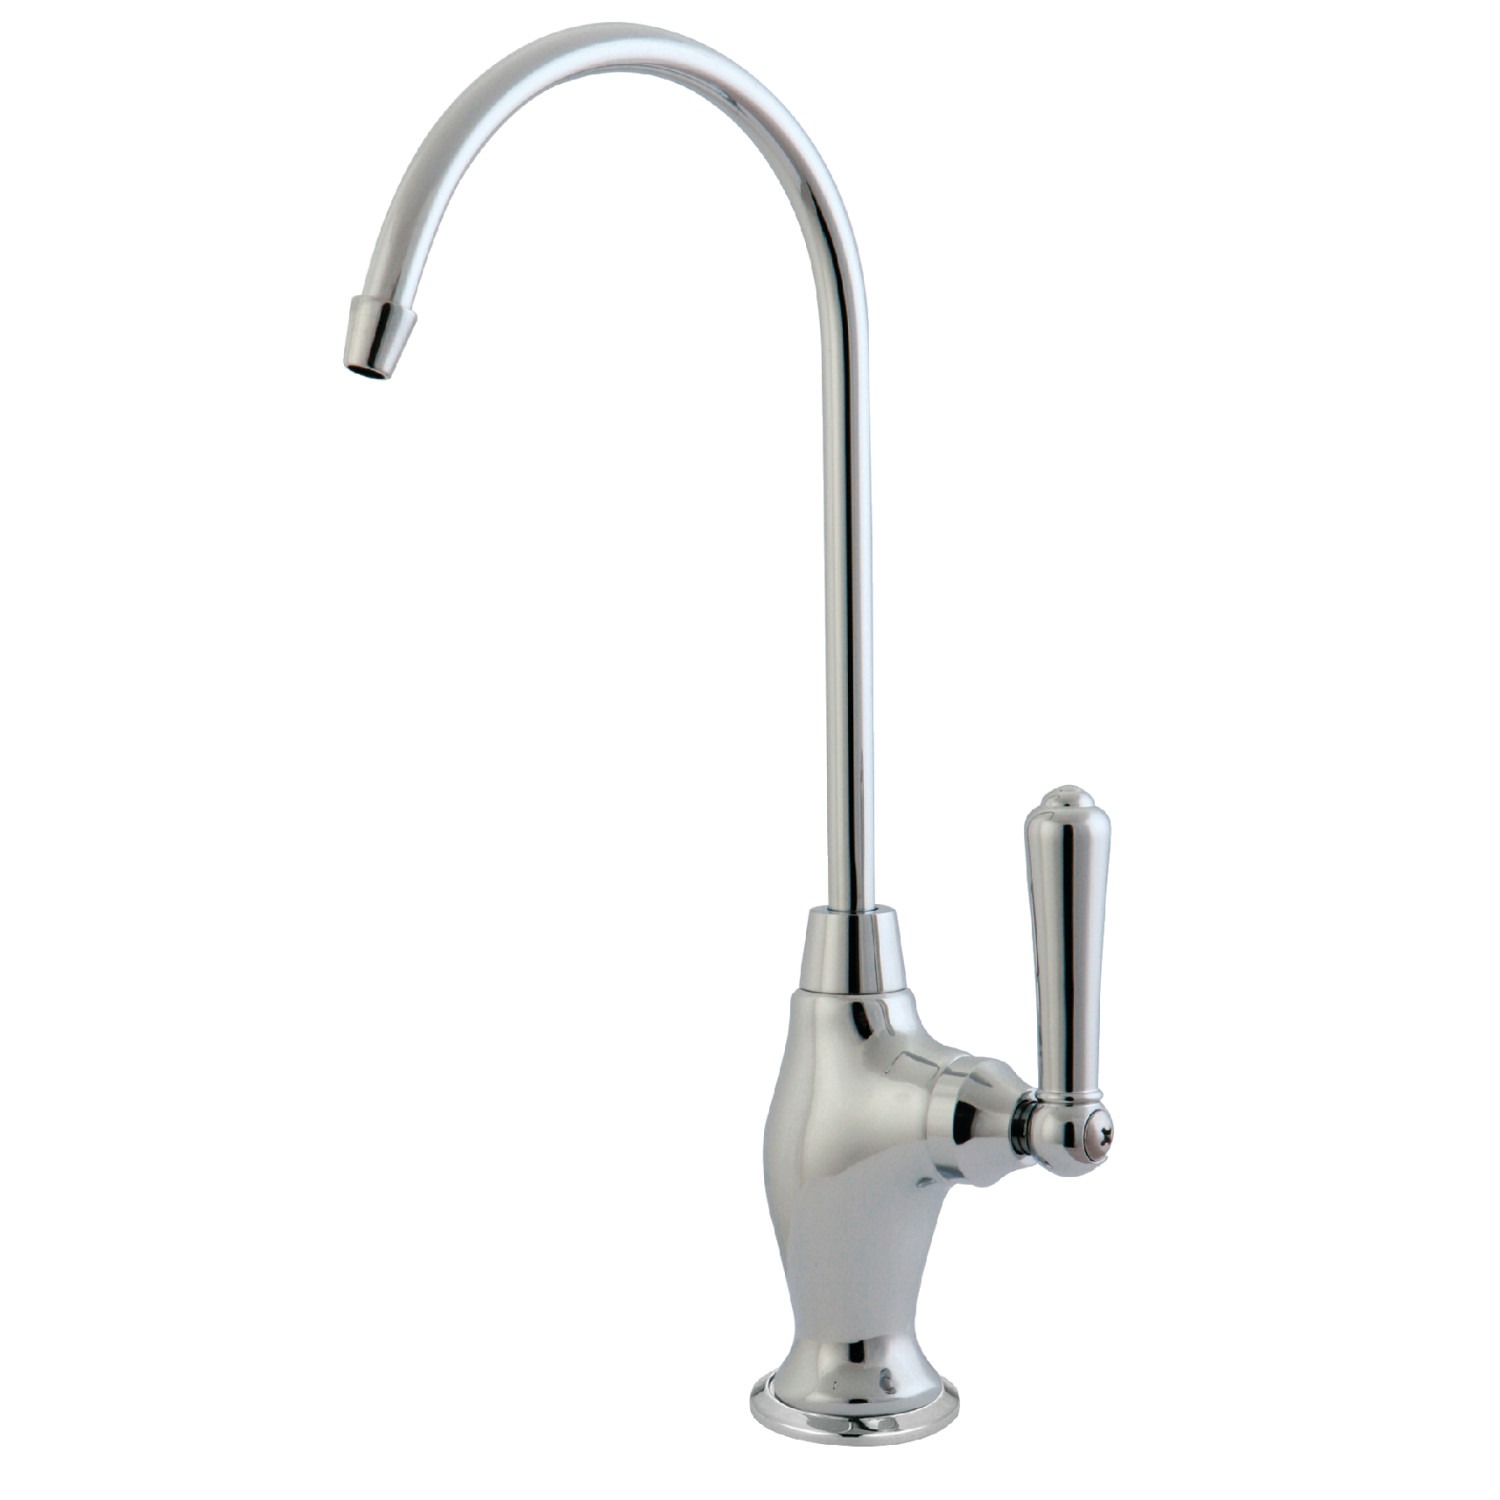 elements of design es3191nml 1 4 turn water filter faucet polished chrome